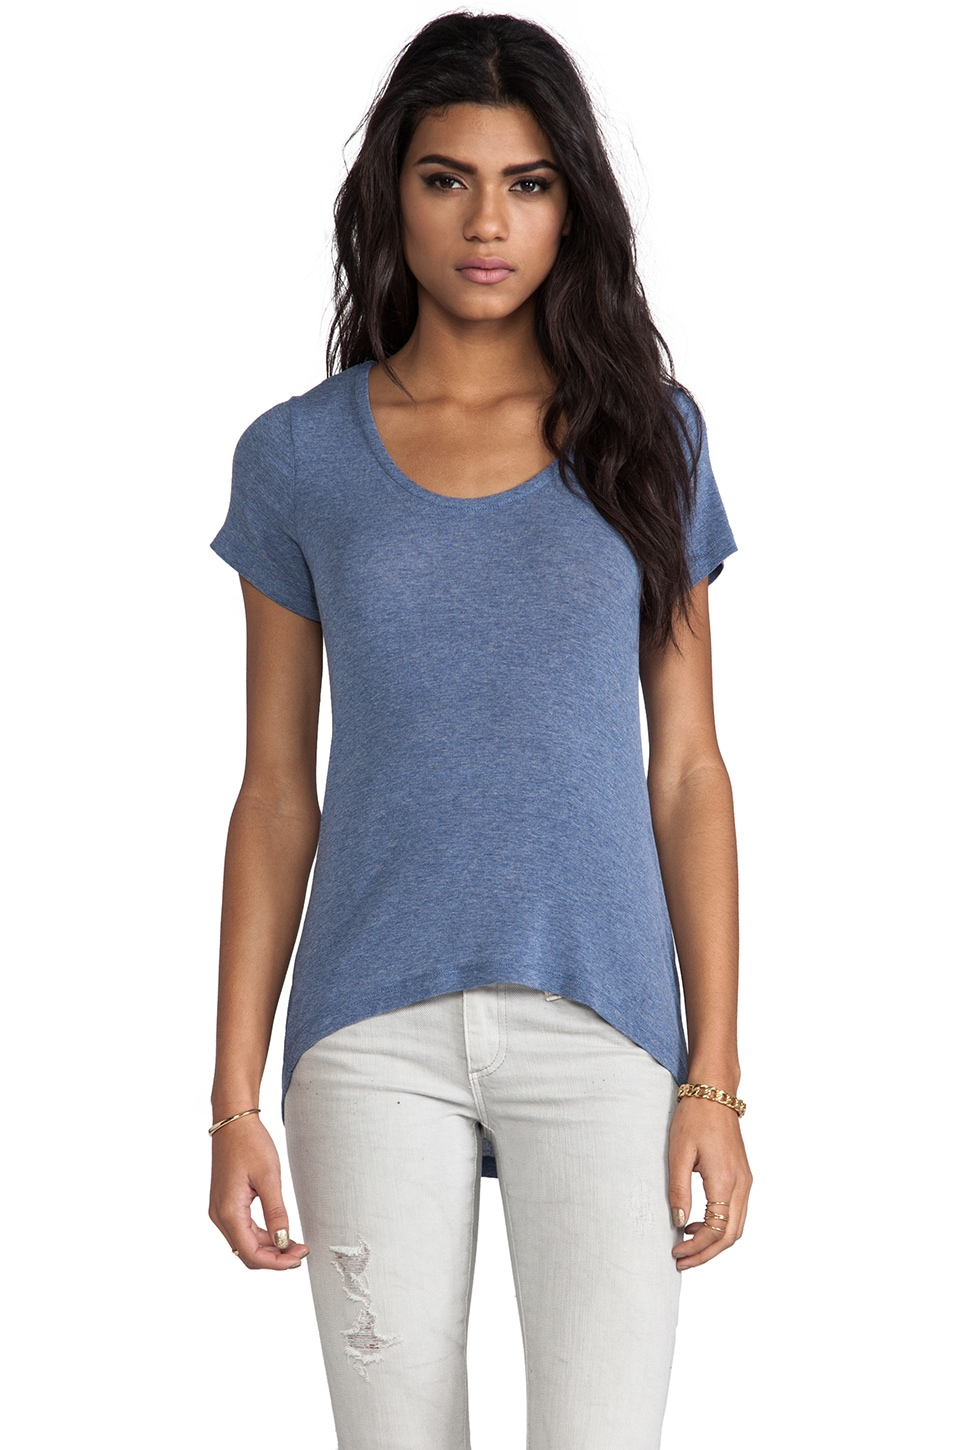 Splendid Drapey Lux Tee in Chambray